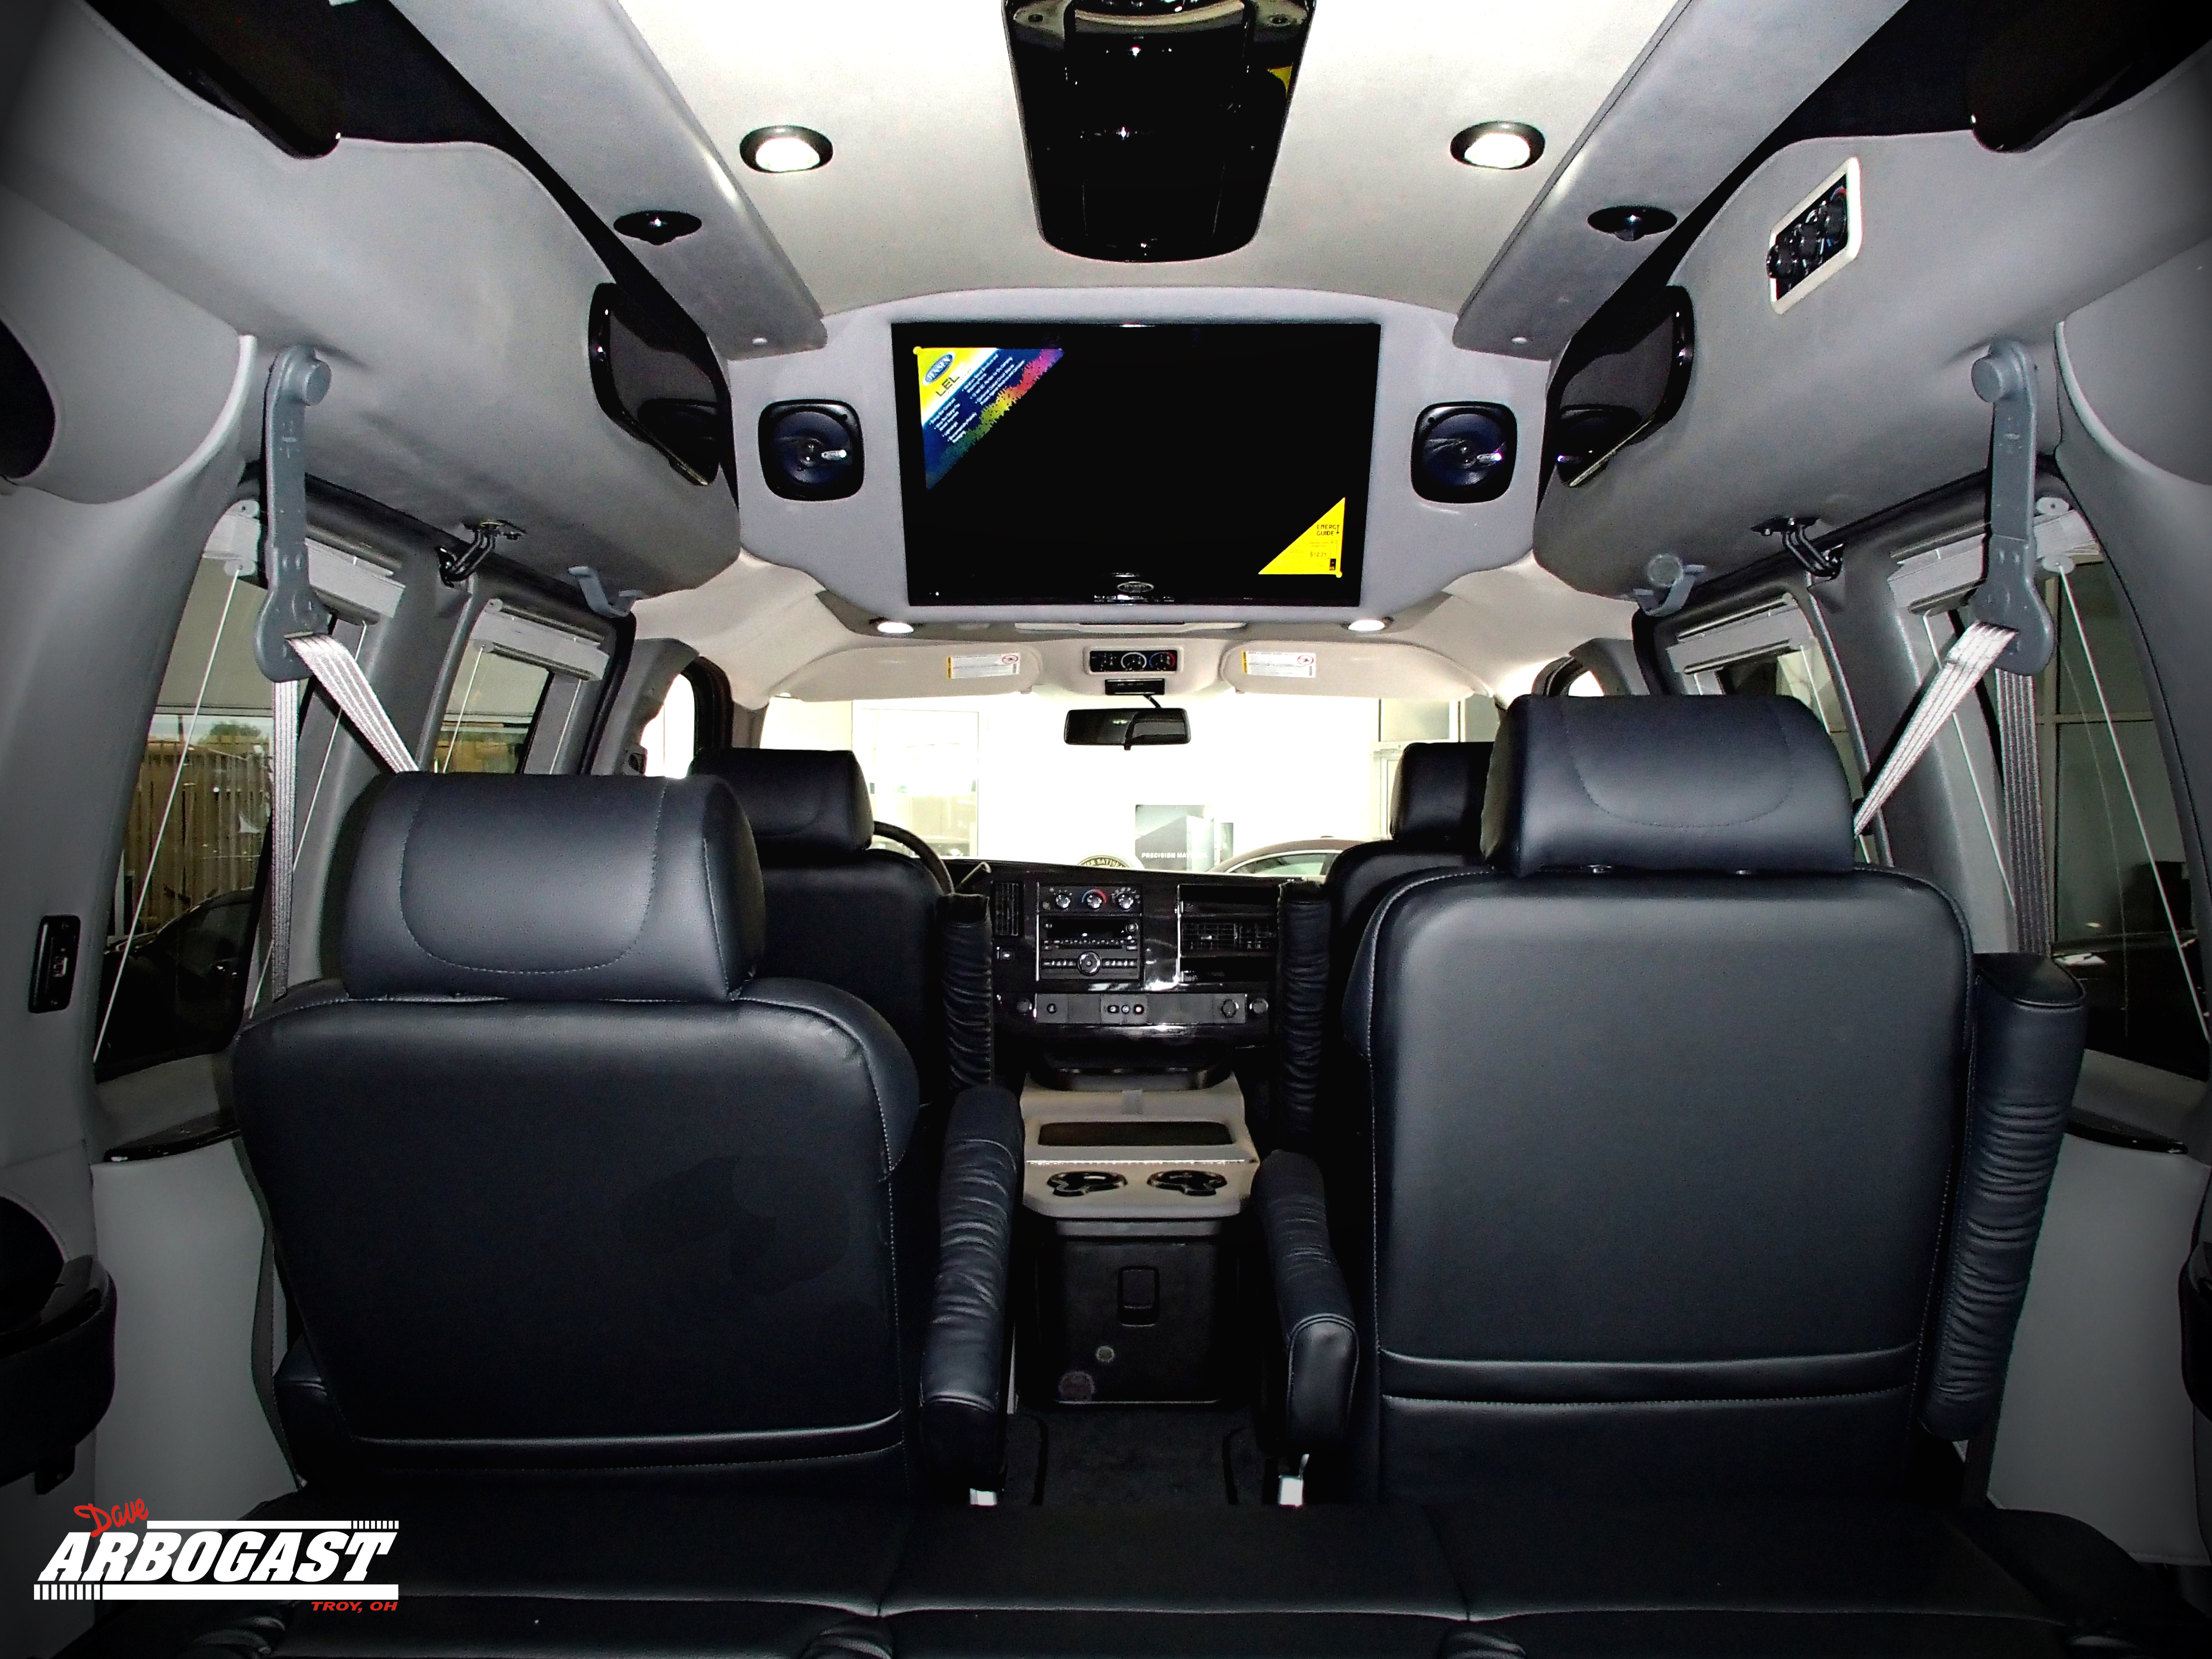 The Seats Often With Leather Upholstery Are So Comfortable You May Not Want To Leave Van Many Swivel Offer Flexible Arrangements For